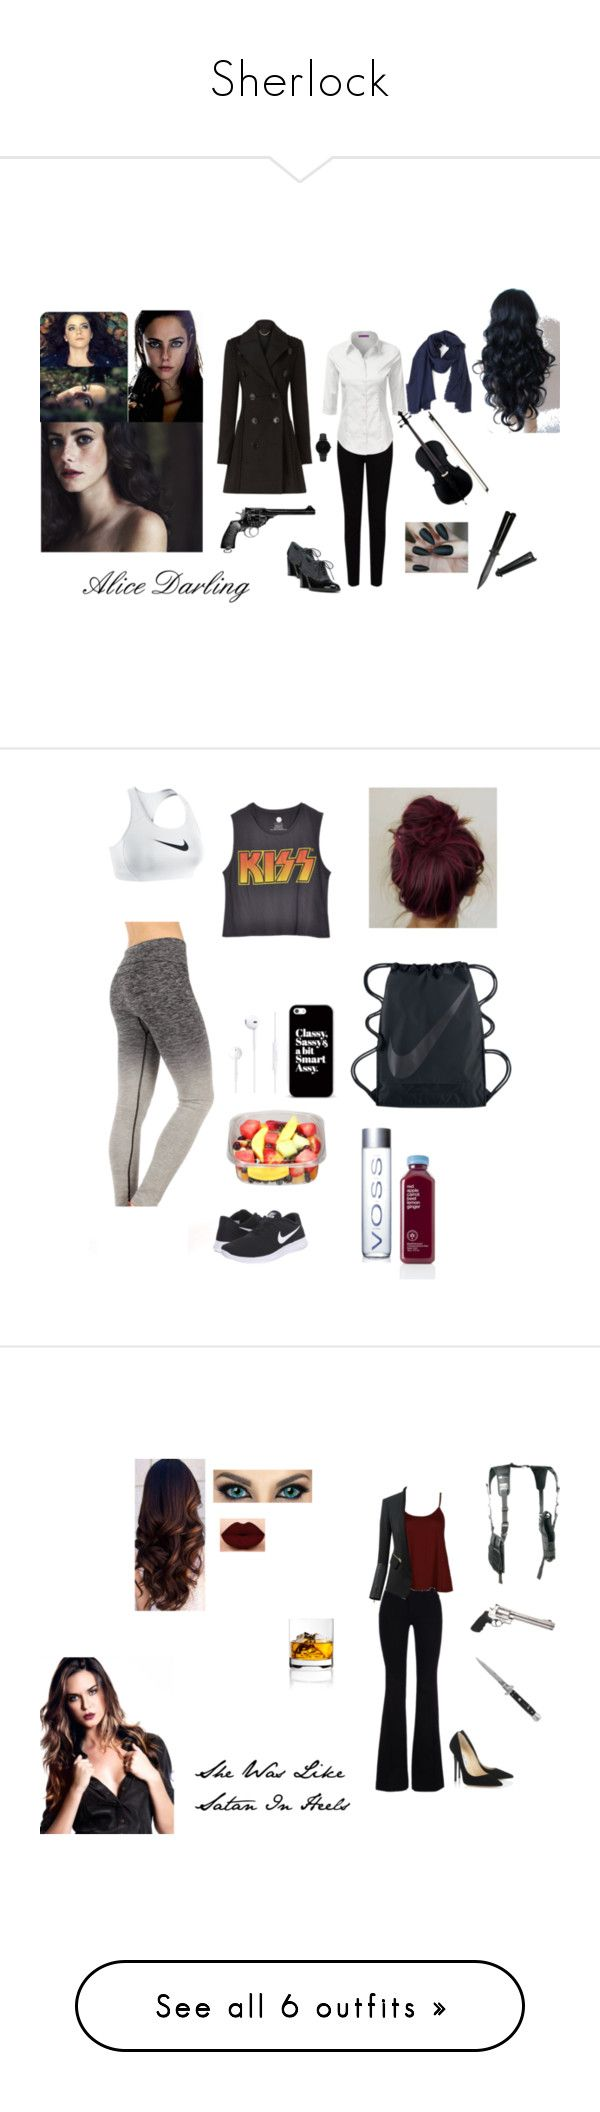 """""""Sherlock"""" by ruby-girl ❤ liked on Polyvore featuring Effy Jewelry, Burberry, EAST, Franco Sarto, TIBI, CLUSE, Revolver, All Black, NIKE and Casetify"""